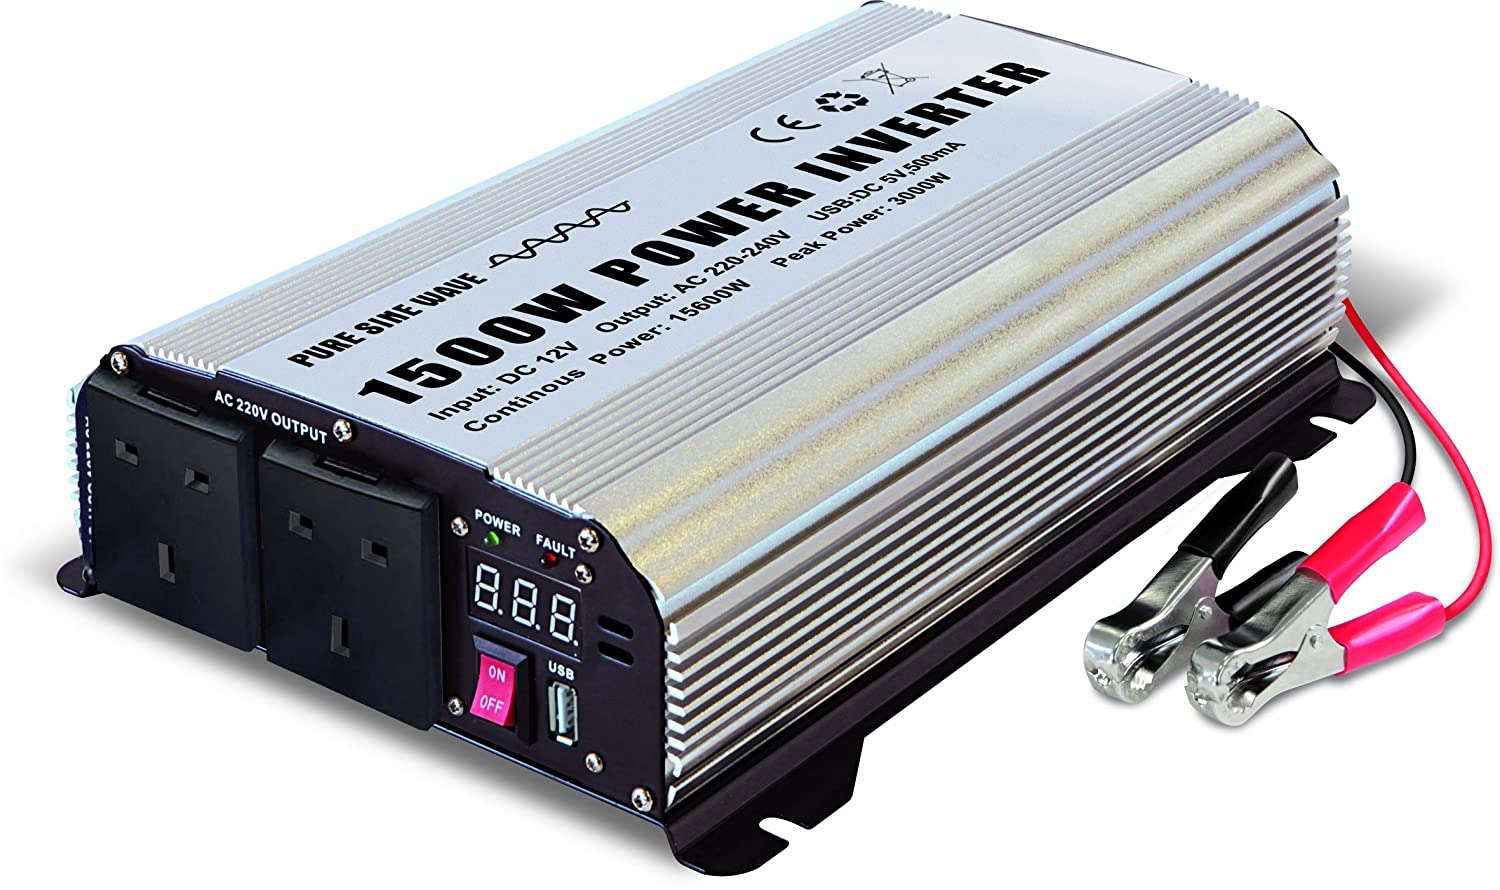 GYS PSW 81500 12-240V 1500W Power Inverter with 2 x 3-Pin Plug Socket and USB Port